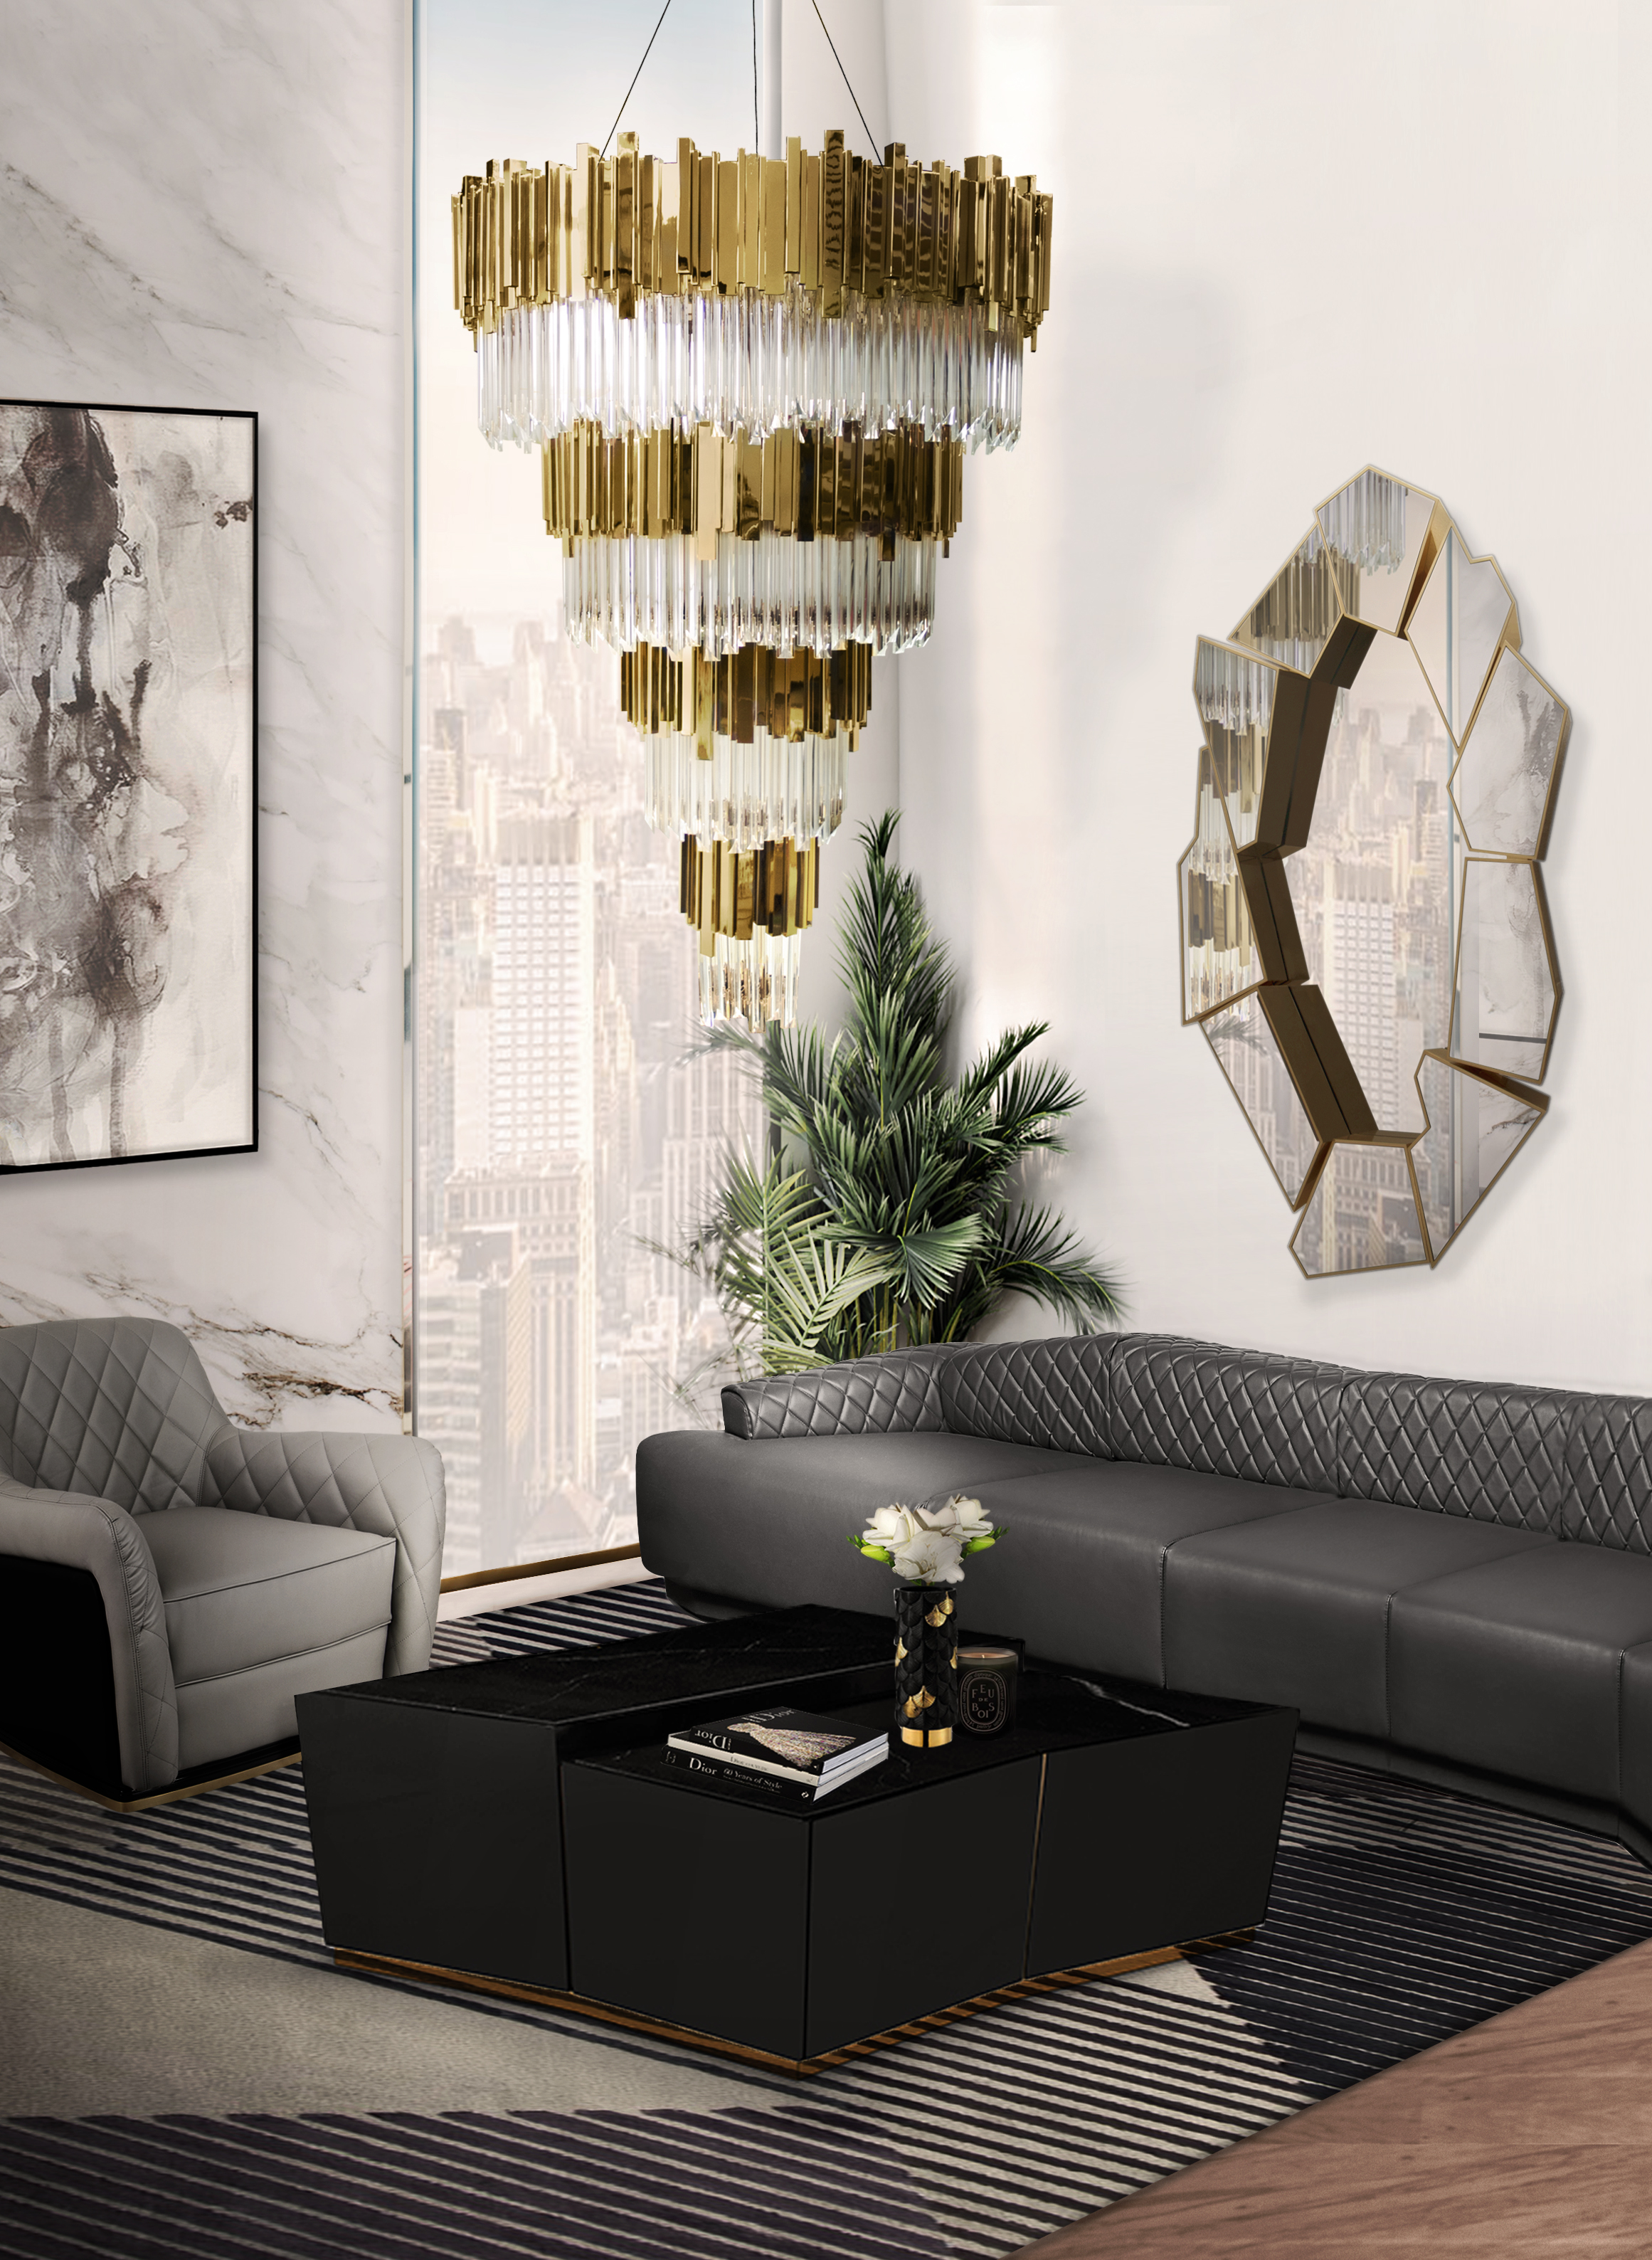 Living Room Trends: Modern Classic living room trends Living Room Trends: Modern Classic empire chandelier cover 06